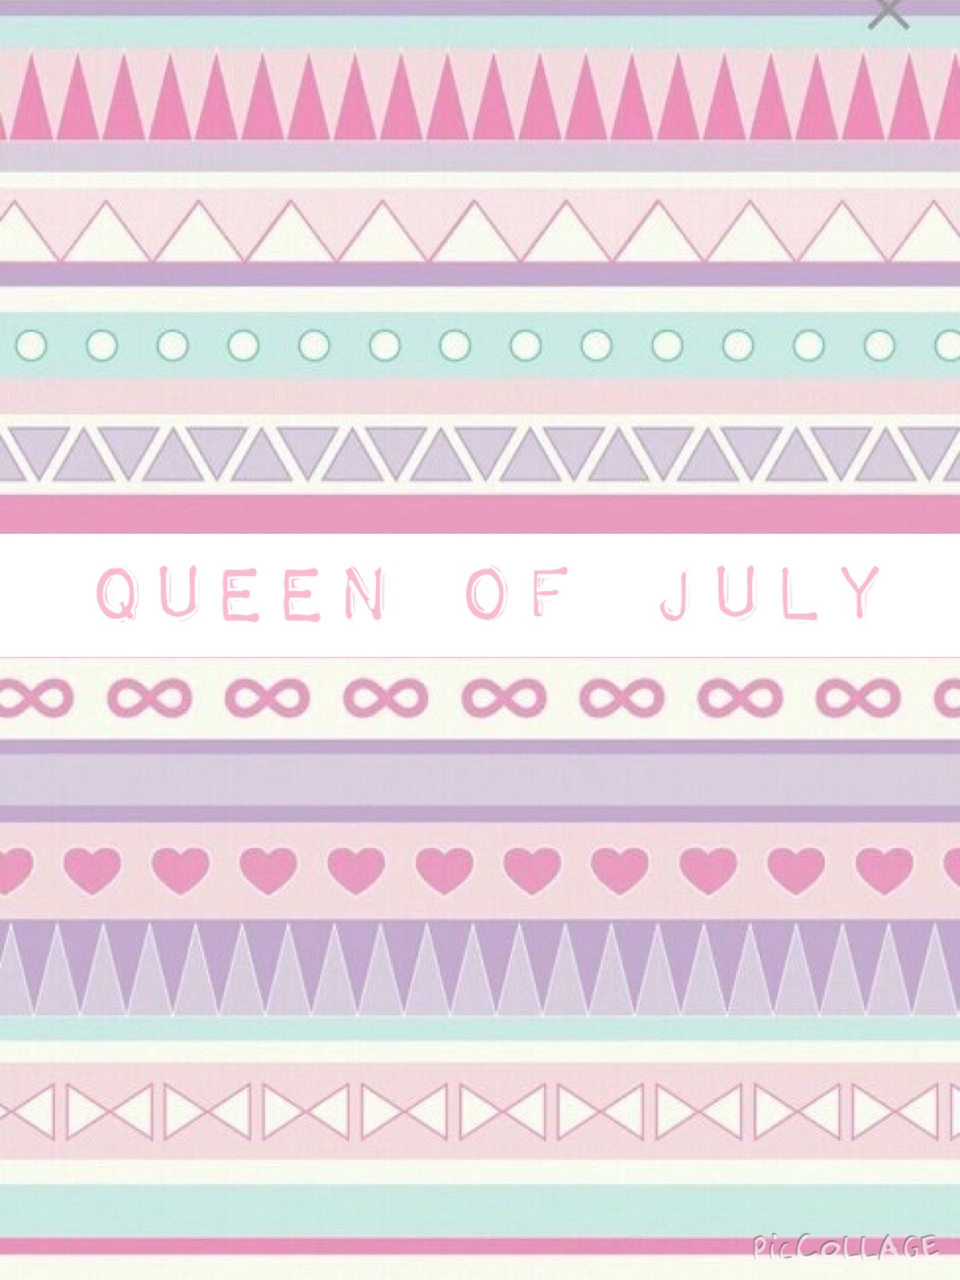 background, birthday, birthday girl, crown, girl, iphone, july, love, pastel pink, pink, queen, wallpaper, lookscreen